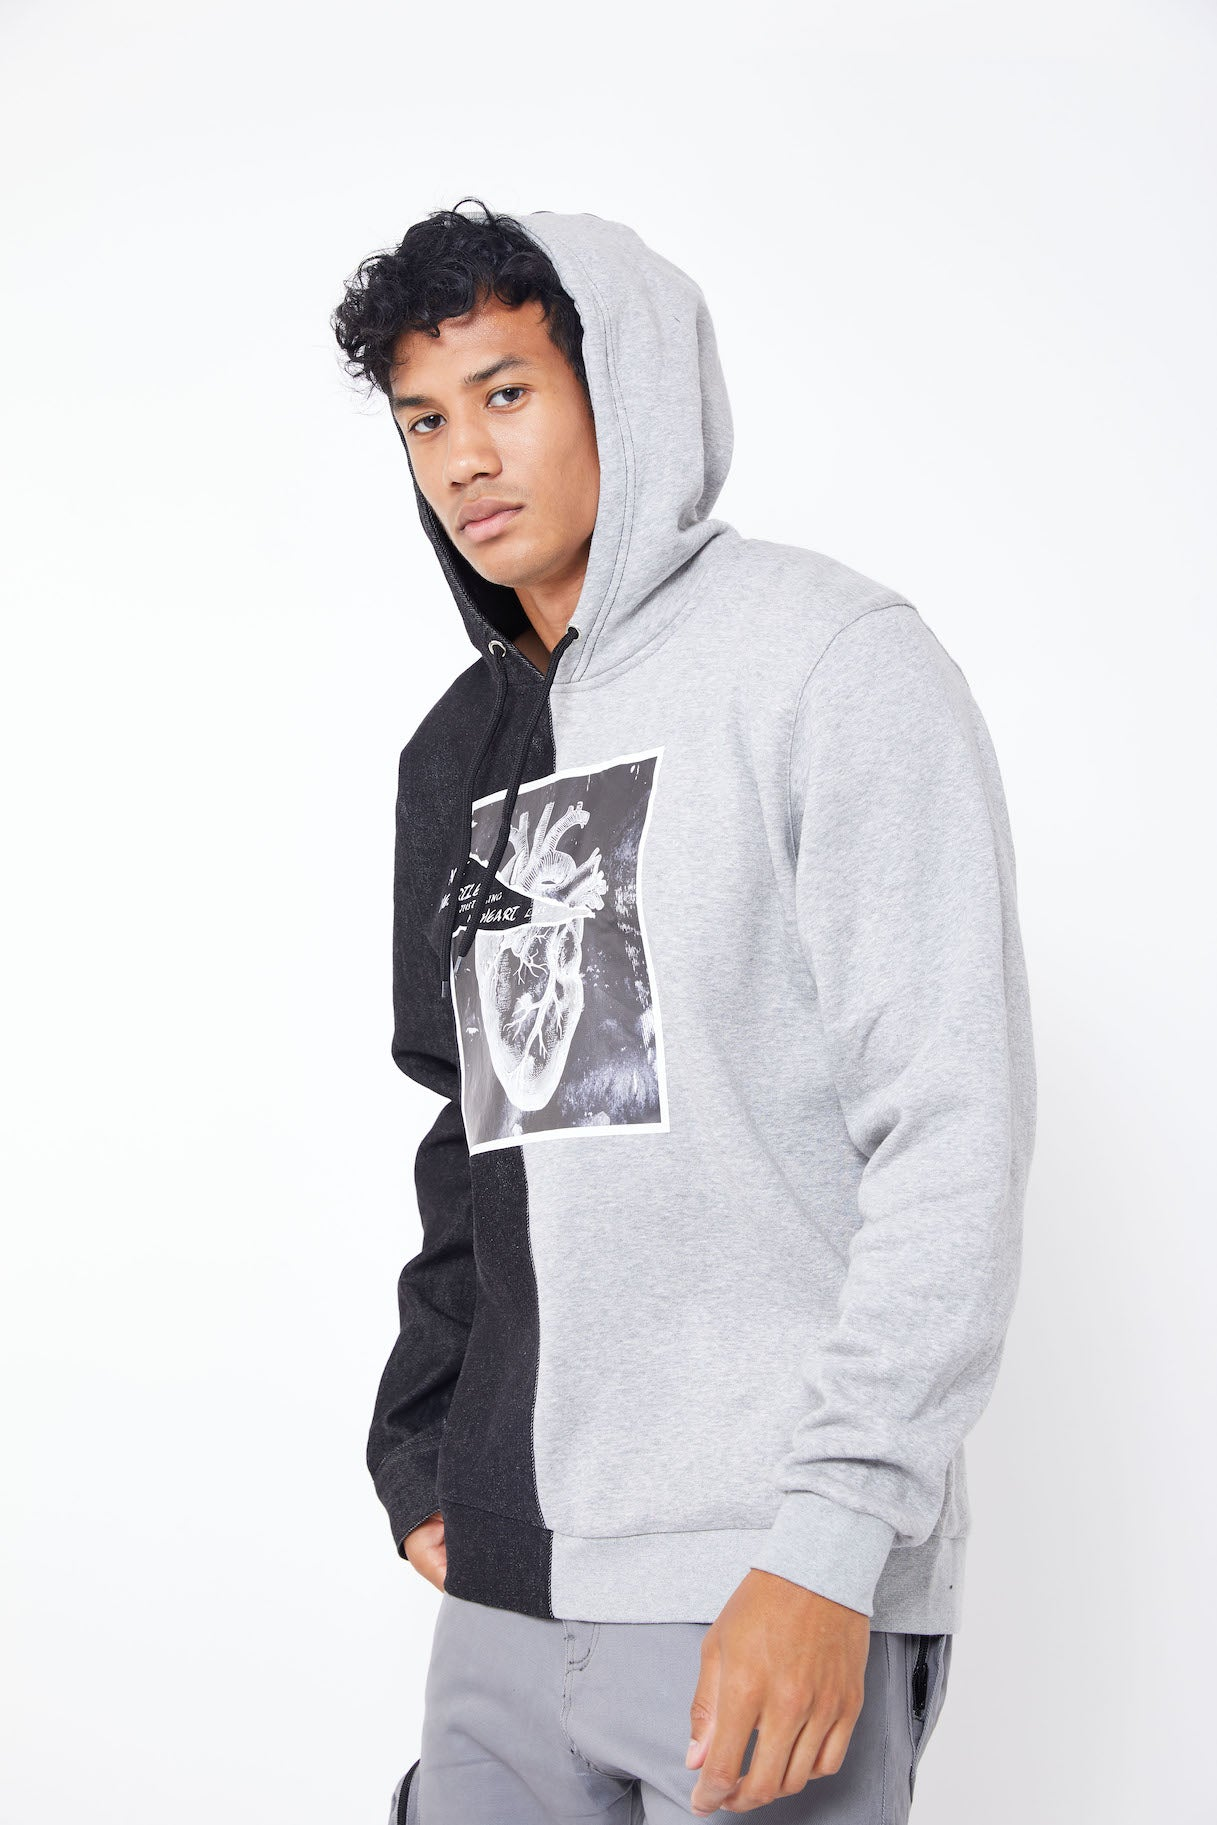 NOT HEARTLESS HALF DENIM HOODIE- LIGHT GREY/BLACK